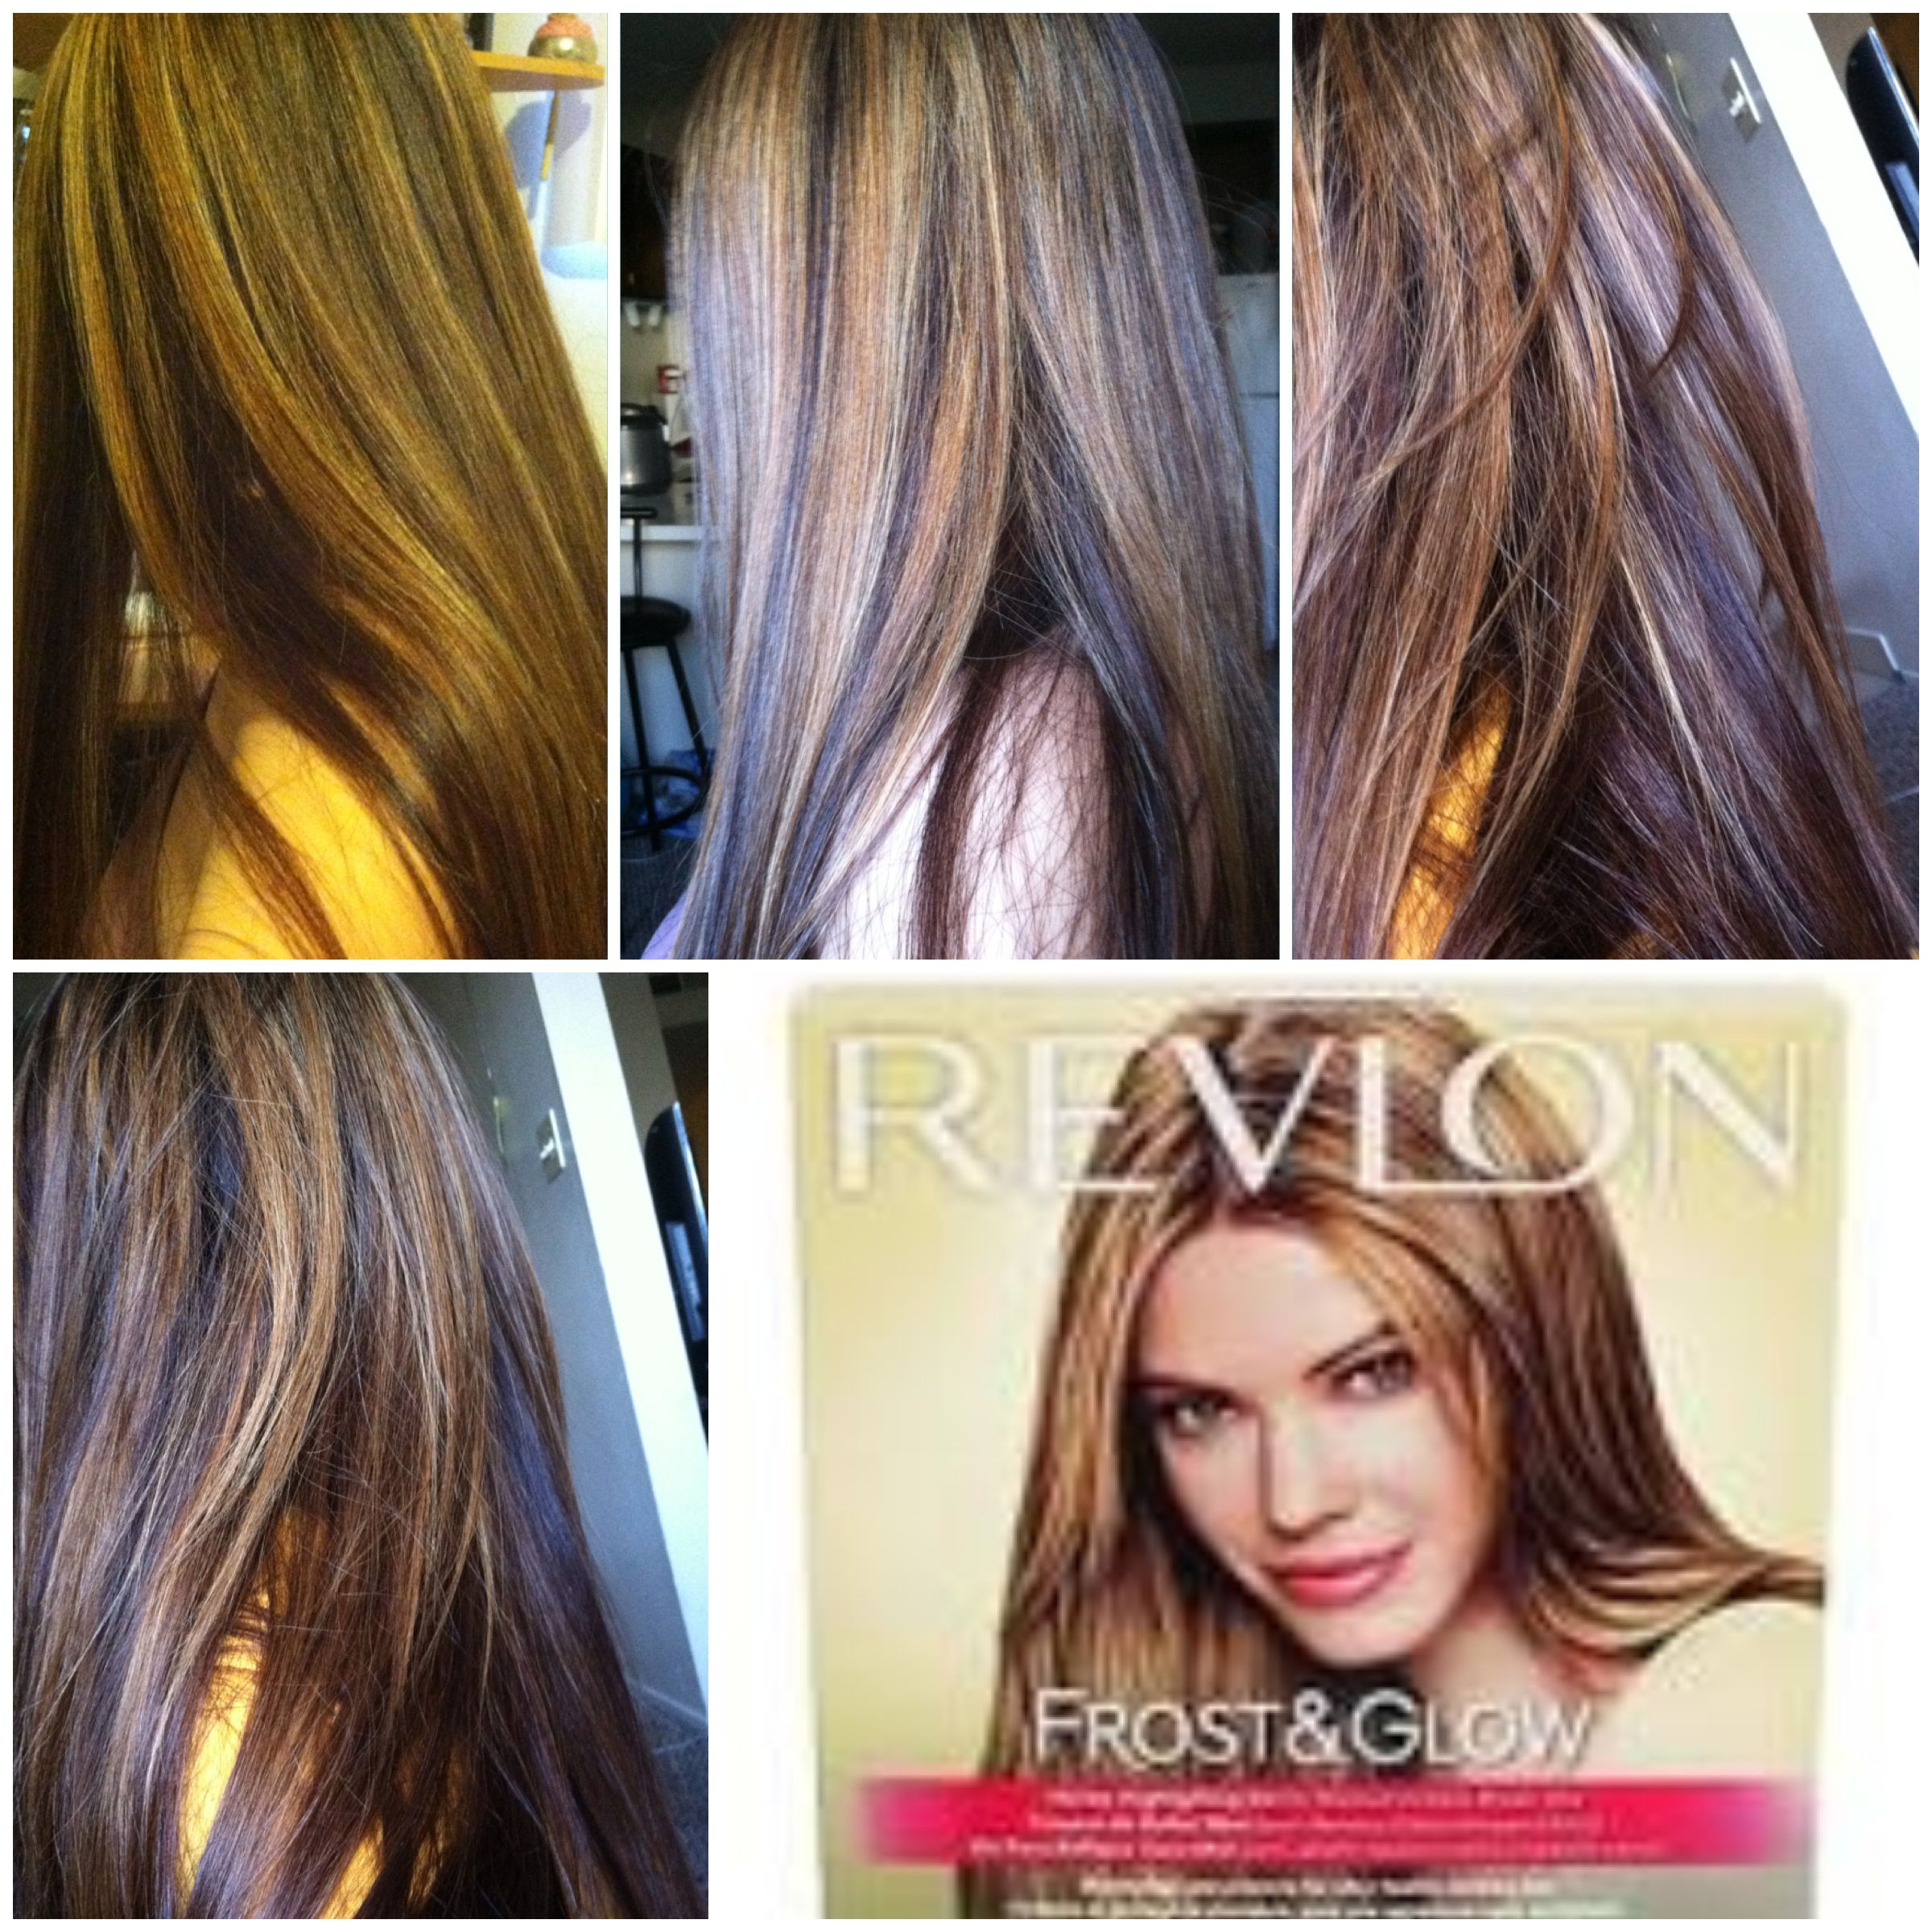 Pinner Said Once Again I Used Revlon Frost And Glow Honey Kit Leave On For An Hour A Half If You Want This Hair Color